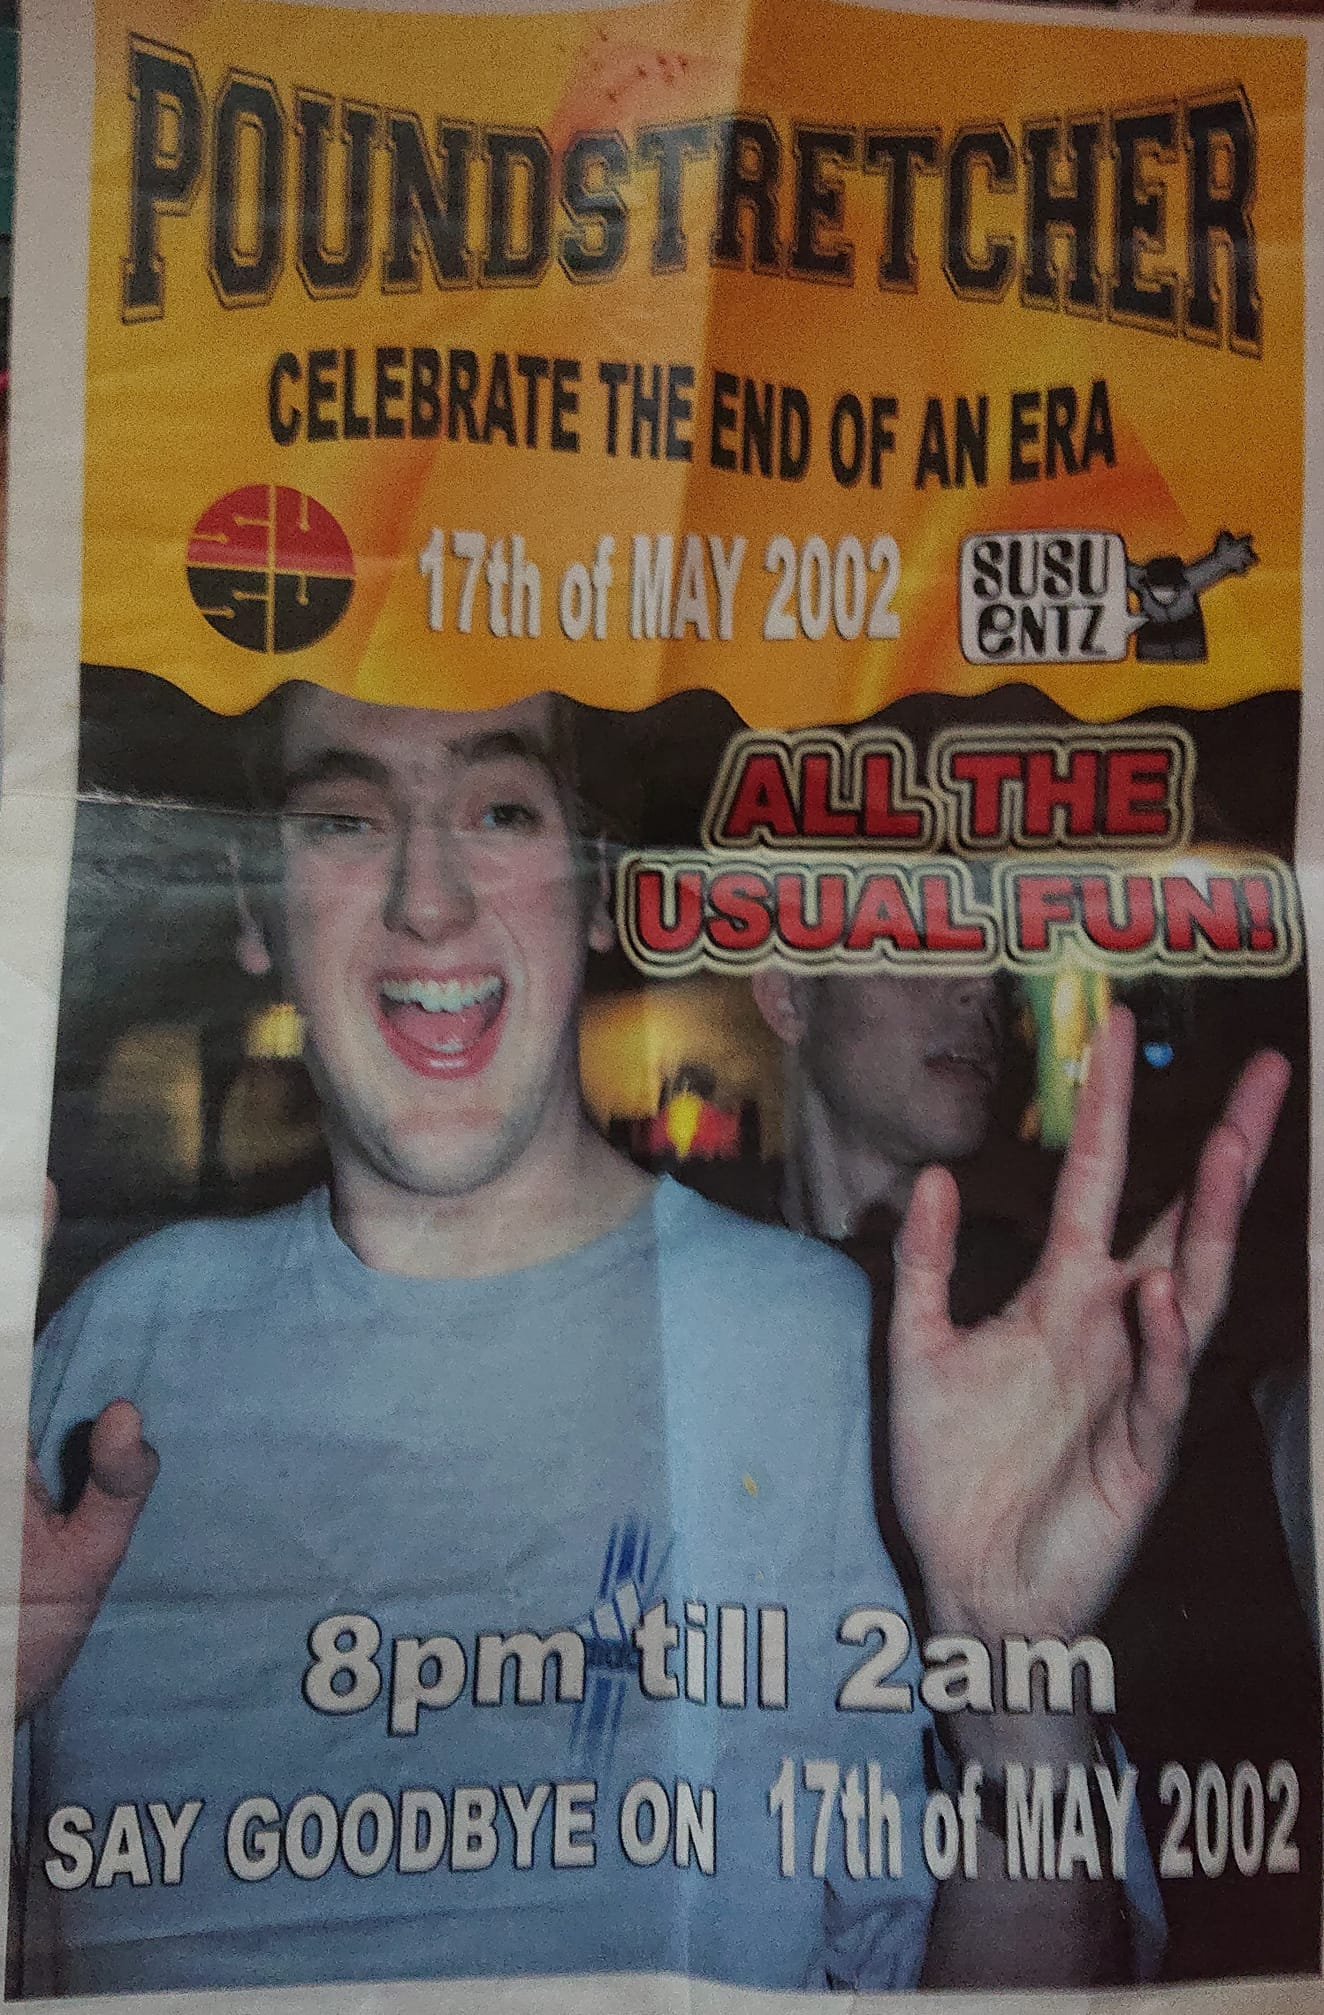 A poster advertising the last Poundstretcher event in May 2002